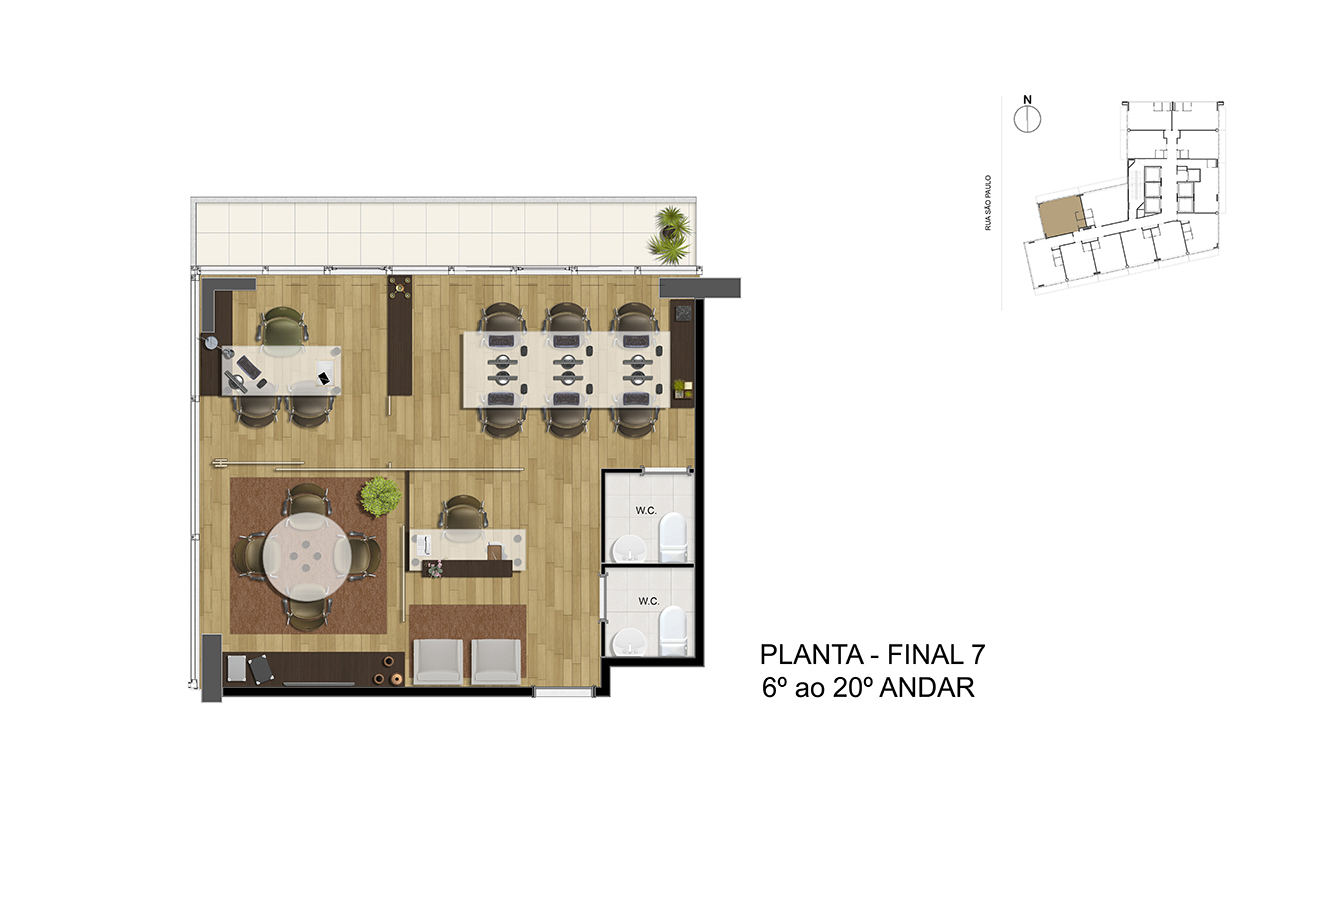 Planta - Final 7 - 6° ao 20° Andar Manhattan Office Santos